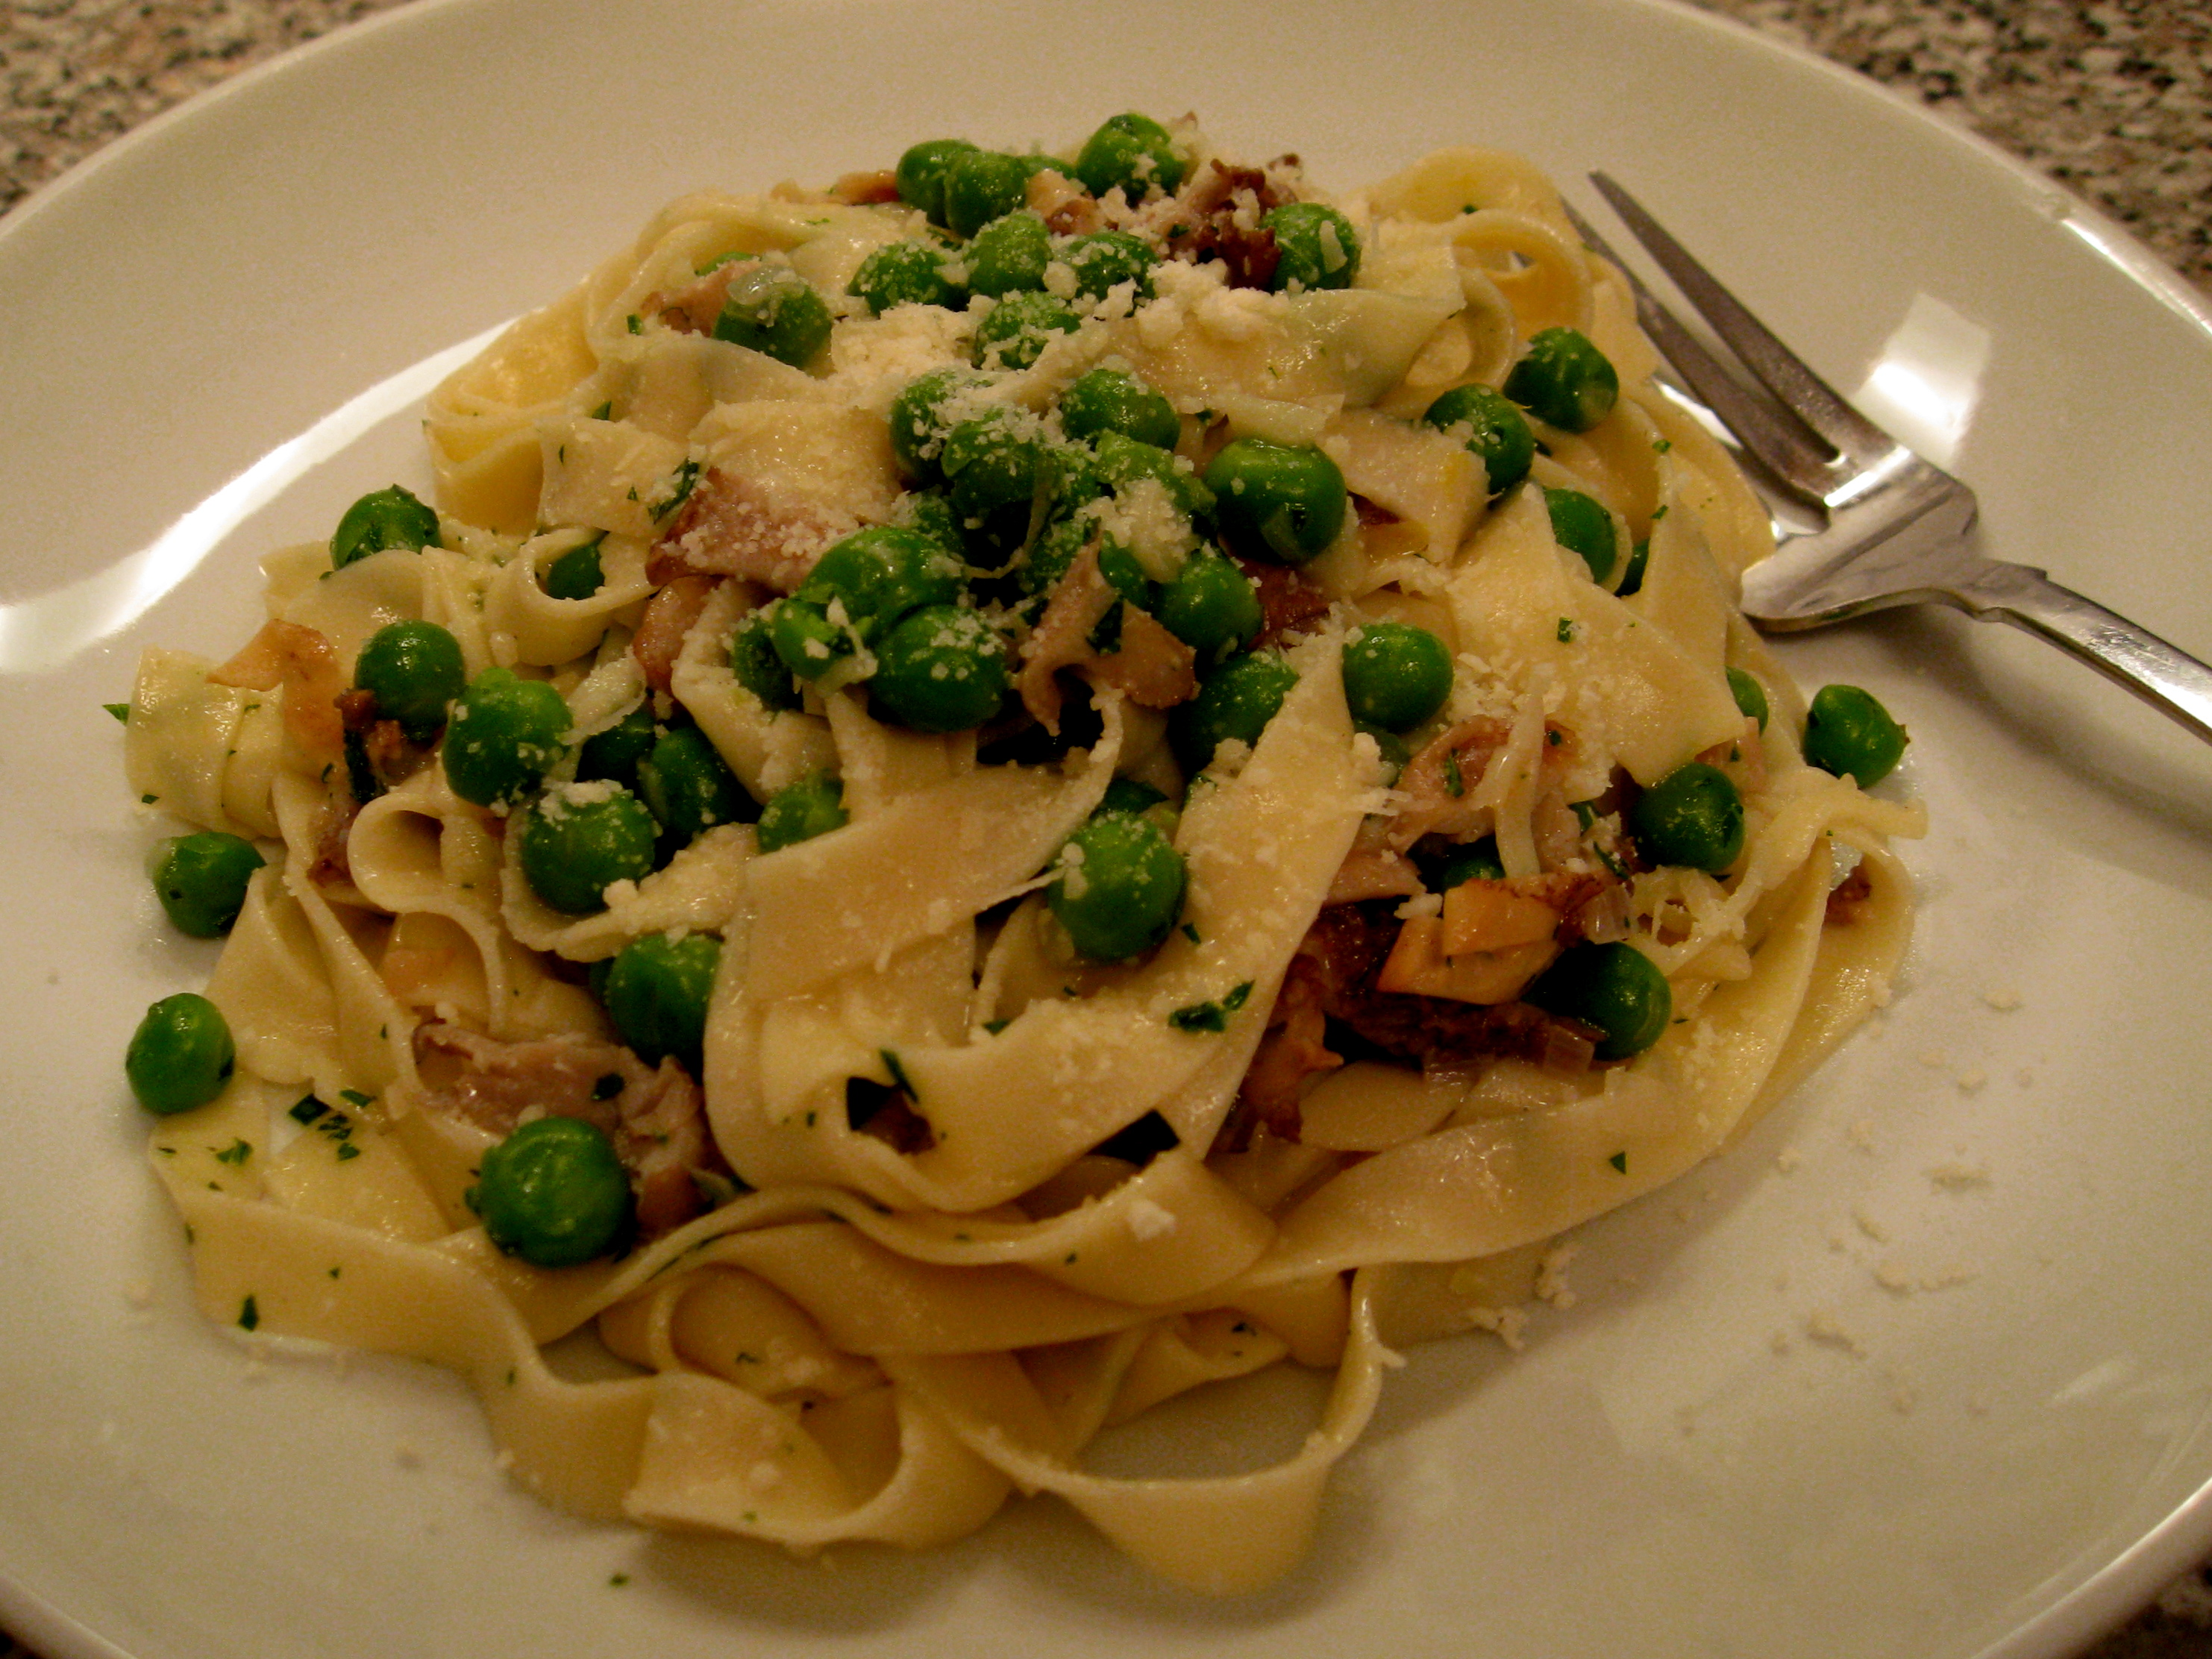 Hedgehog mushroom pasta recipes